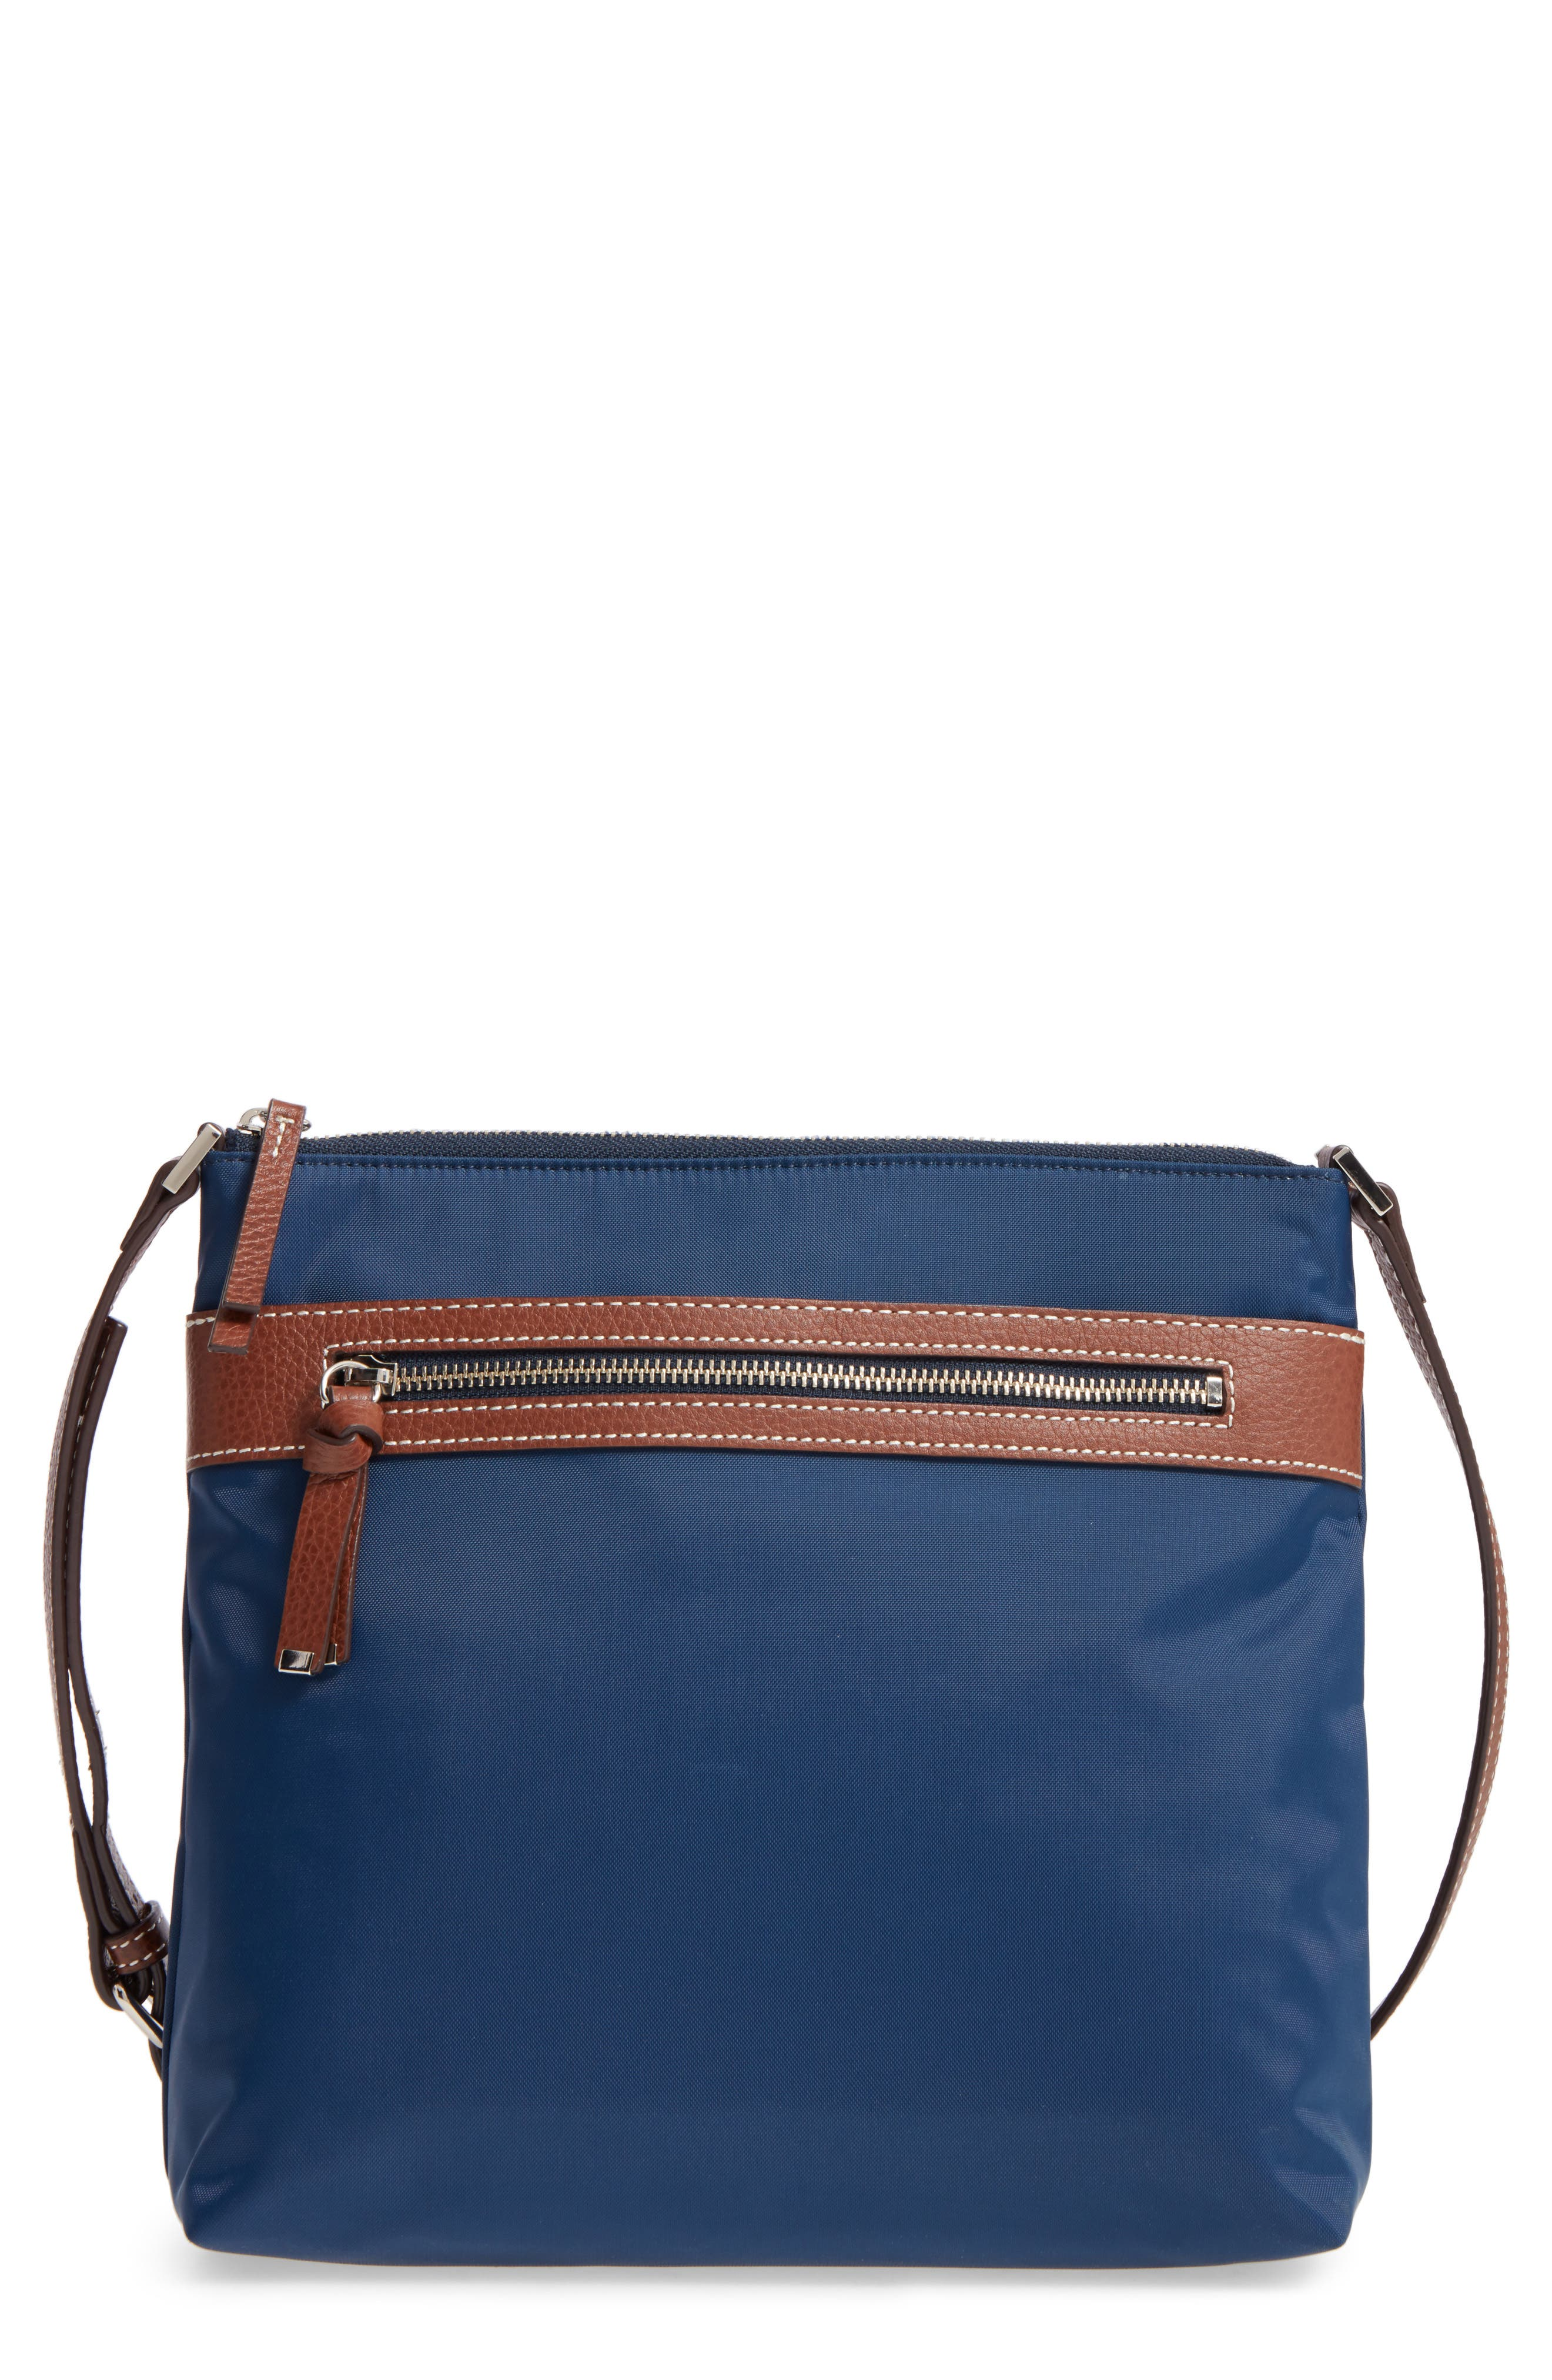 Halogen Nylon Crossbody Bag